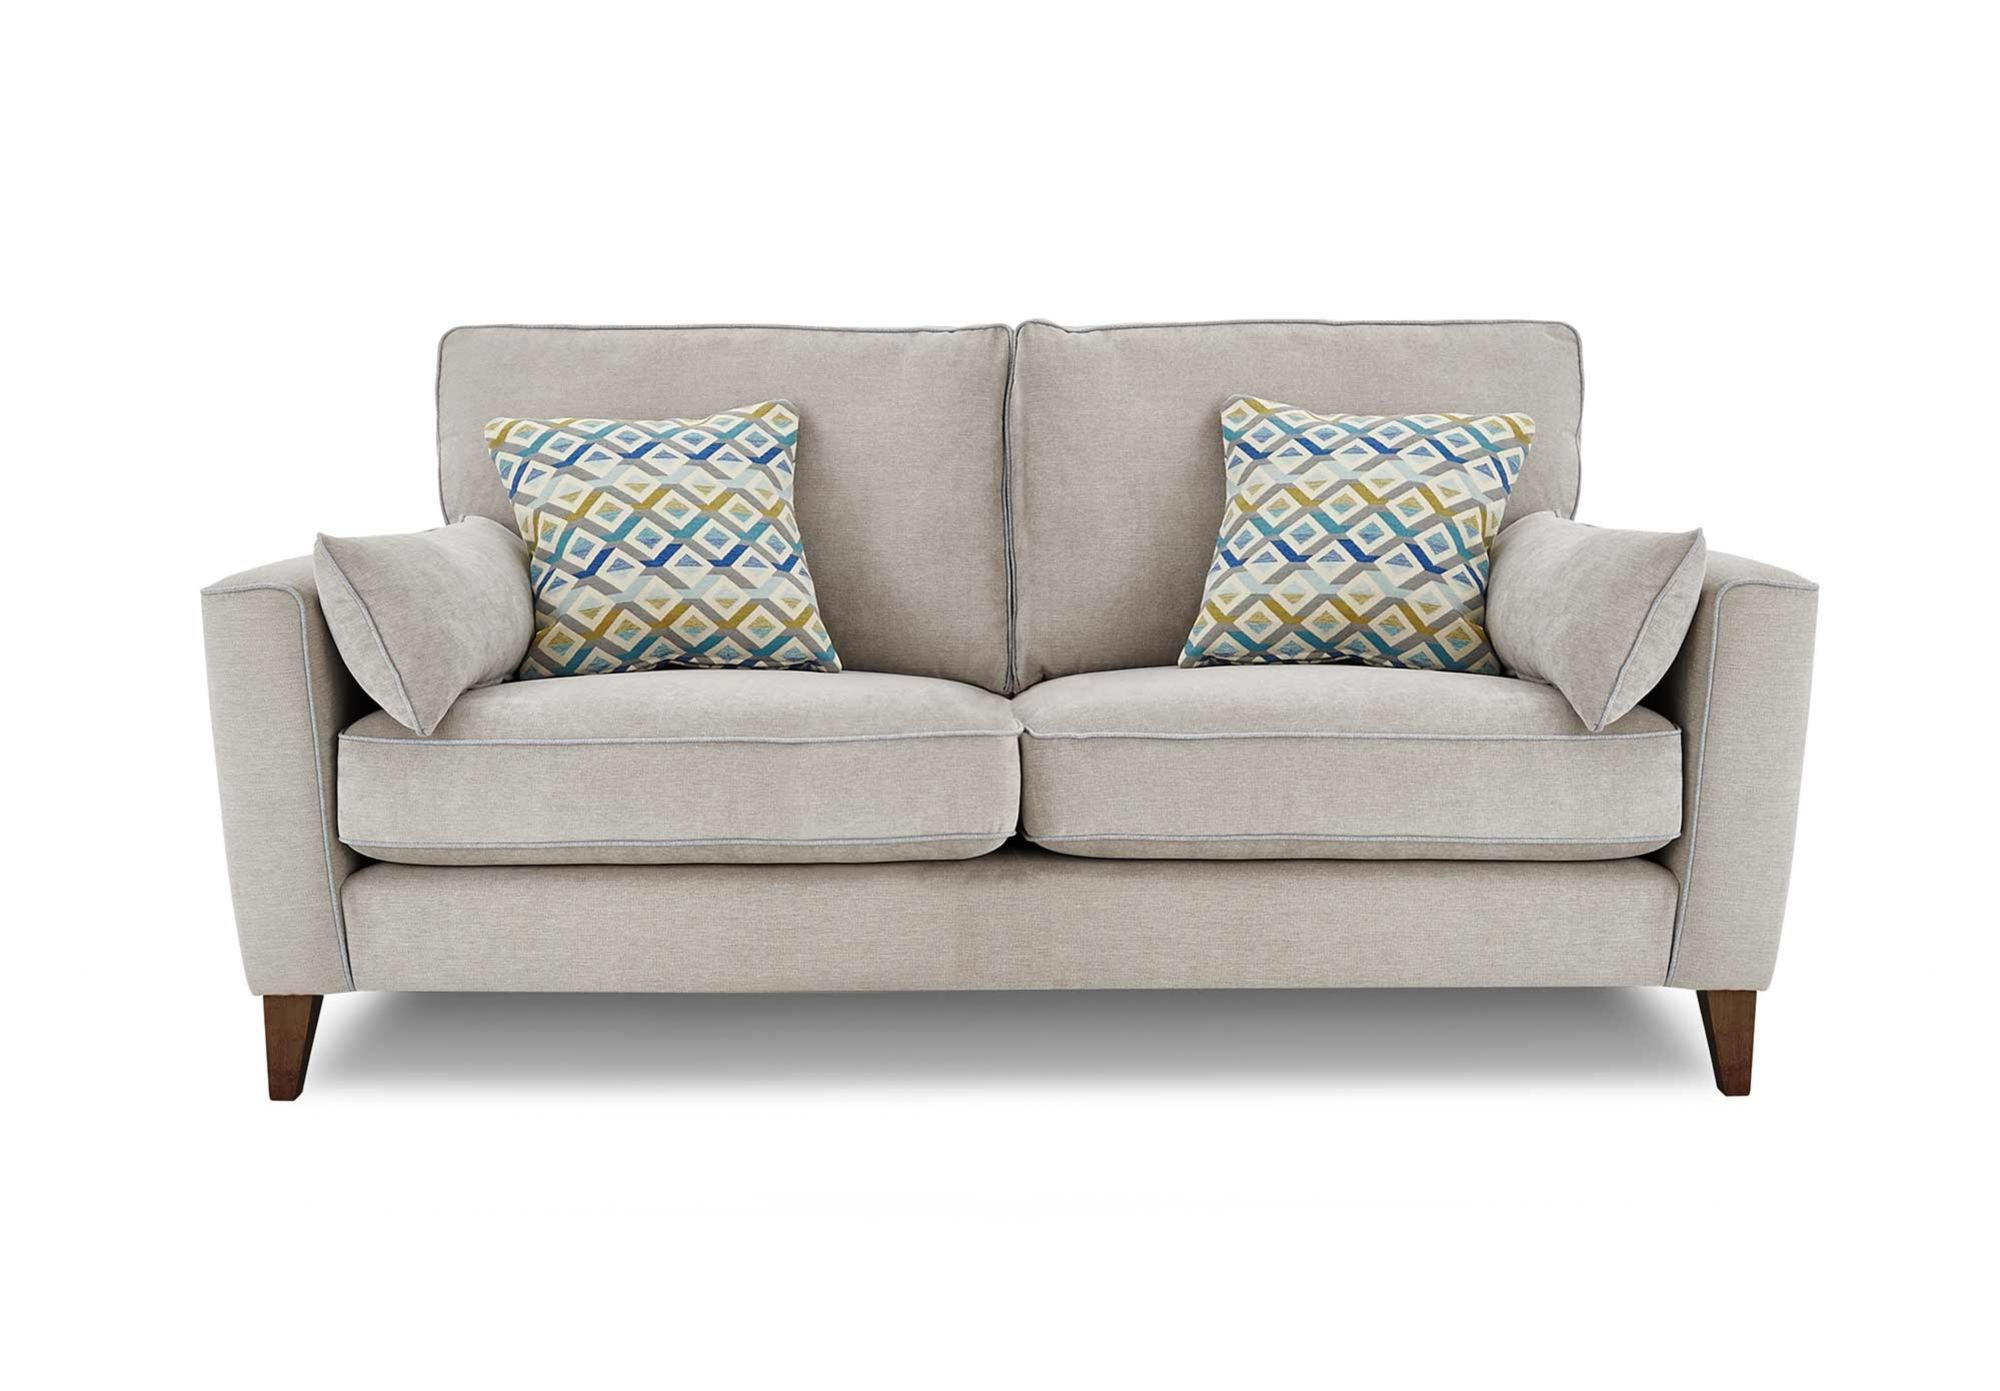 Two Seater Sofa Silfre Inside 2 Seat Sofa On Sale With Regard To Residence